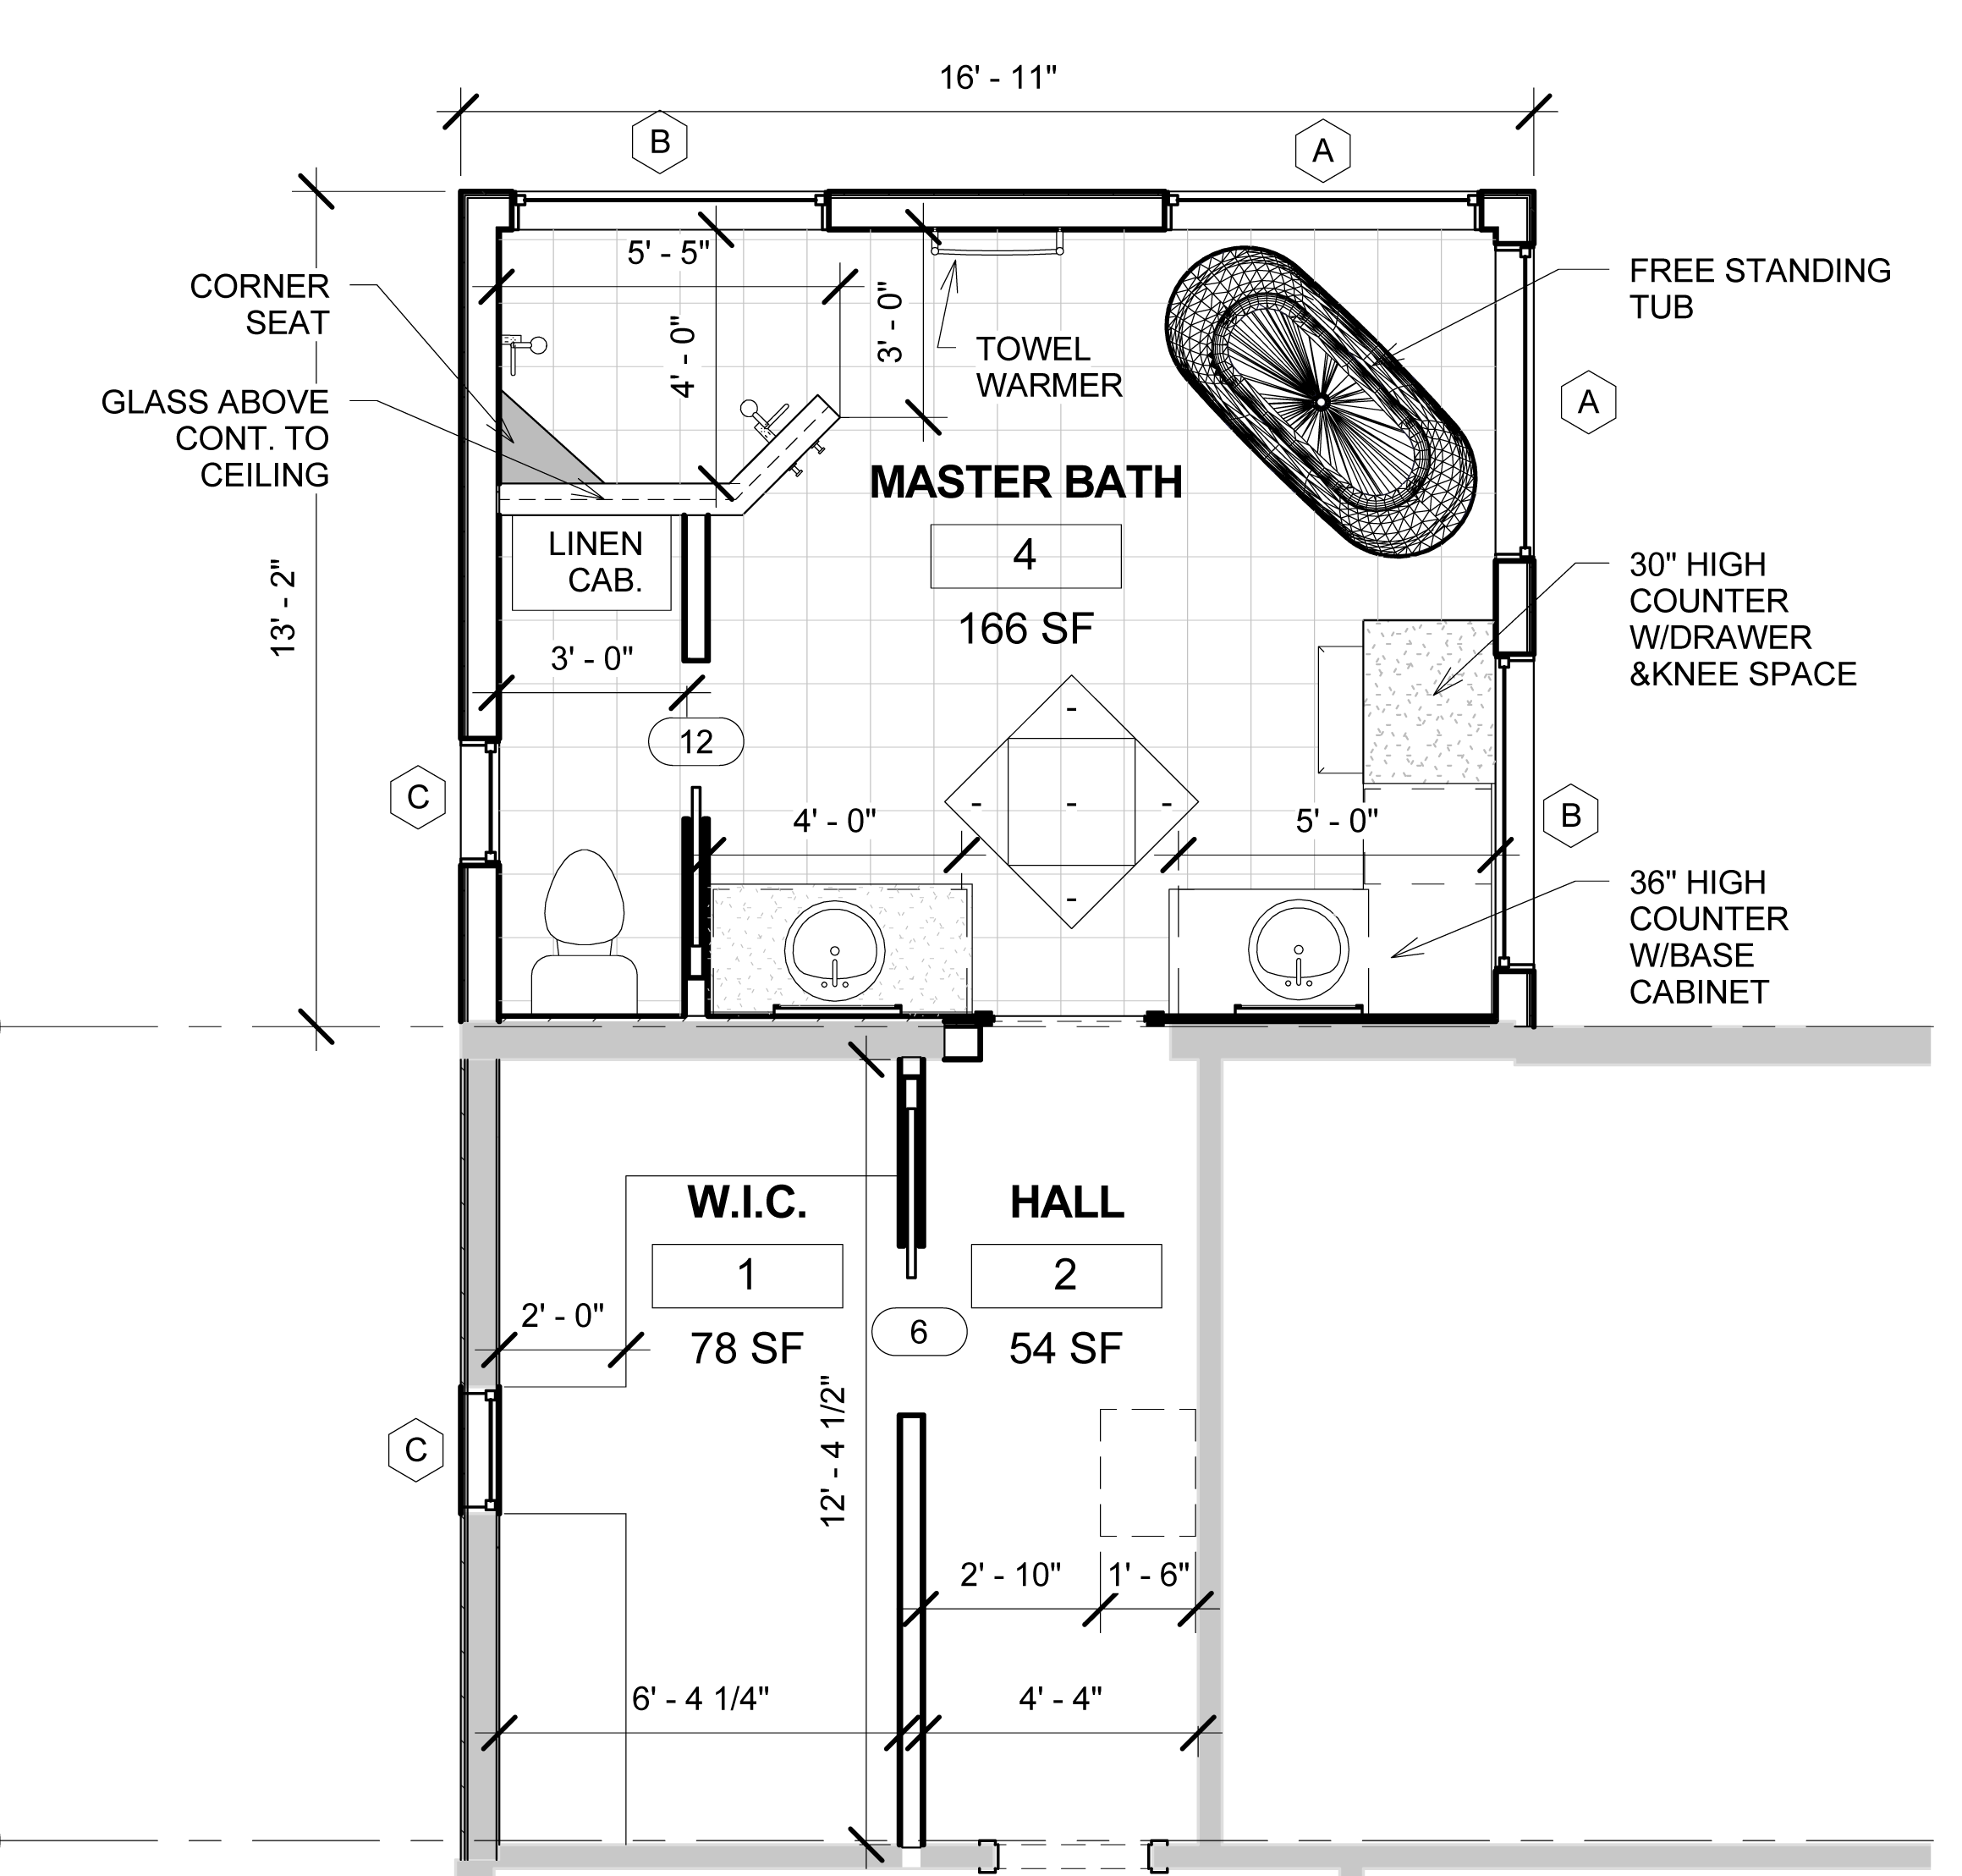 Bathroom Addition Plans #21: 1000+ Images About Baths On Pinterest | Bathroom Layout, Vanities And Closet Layout